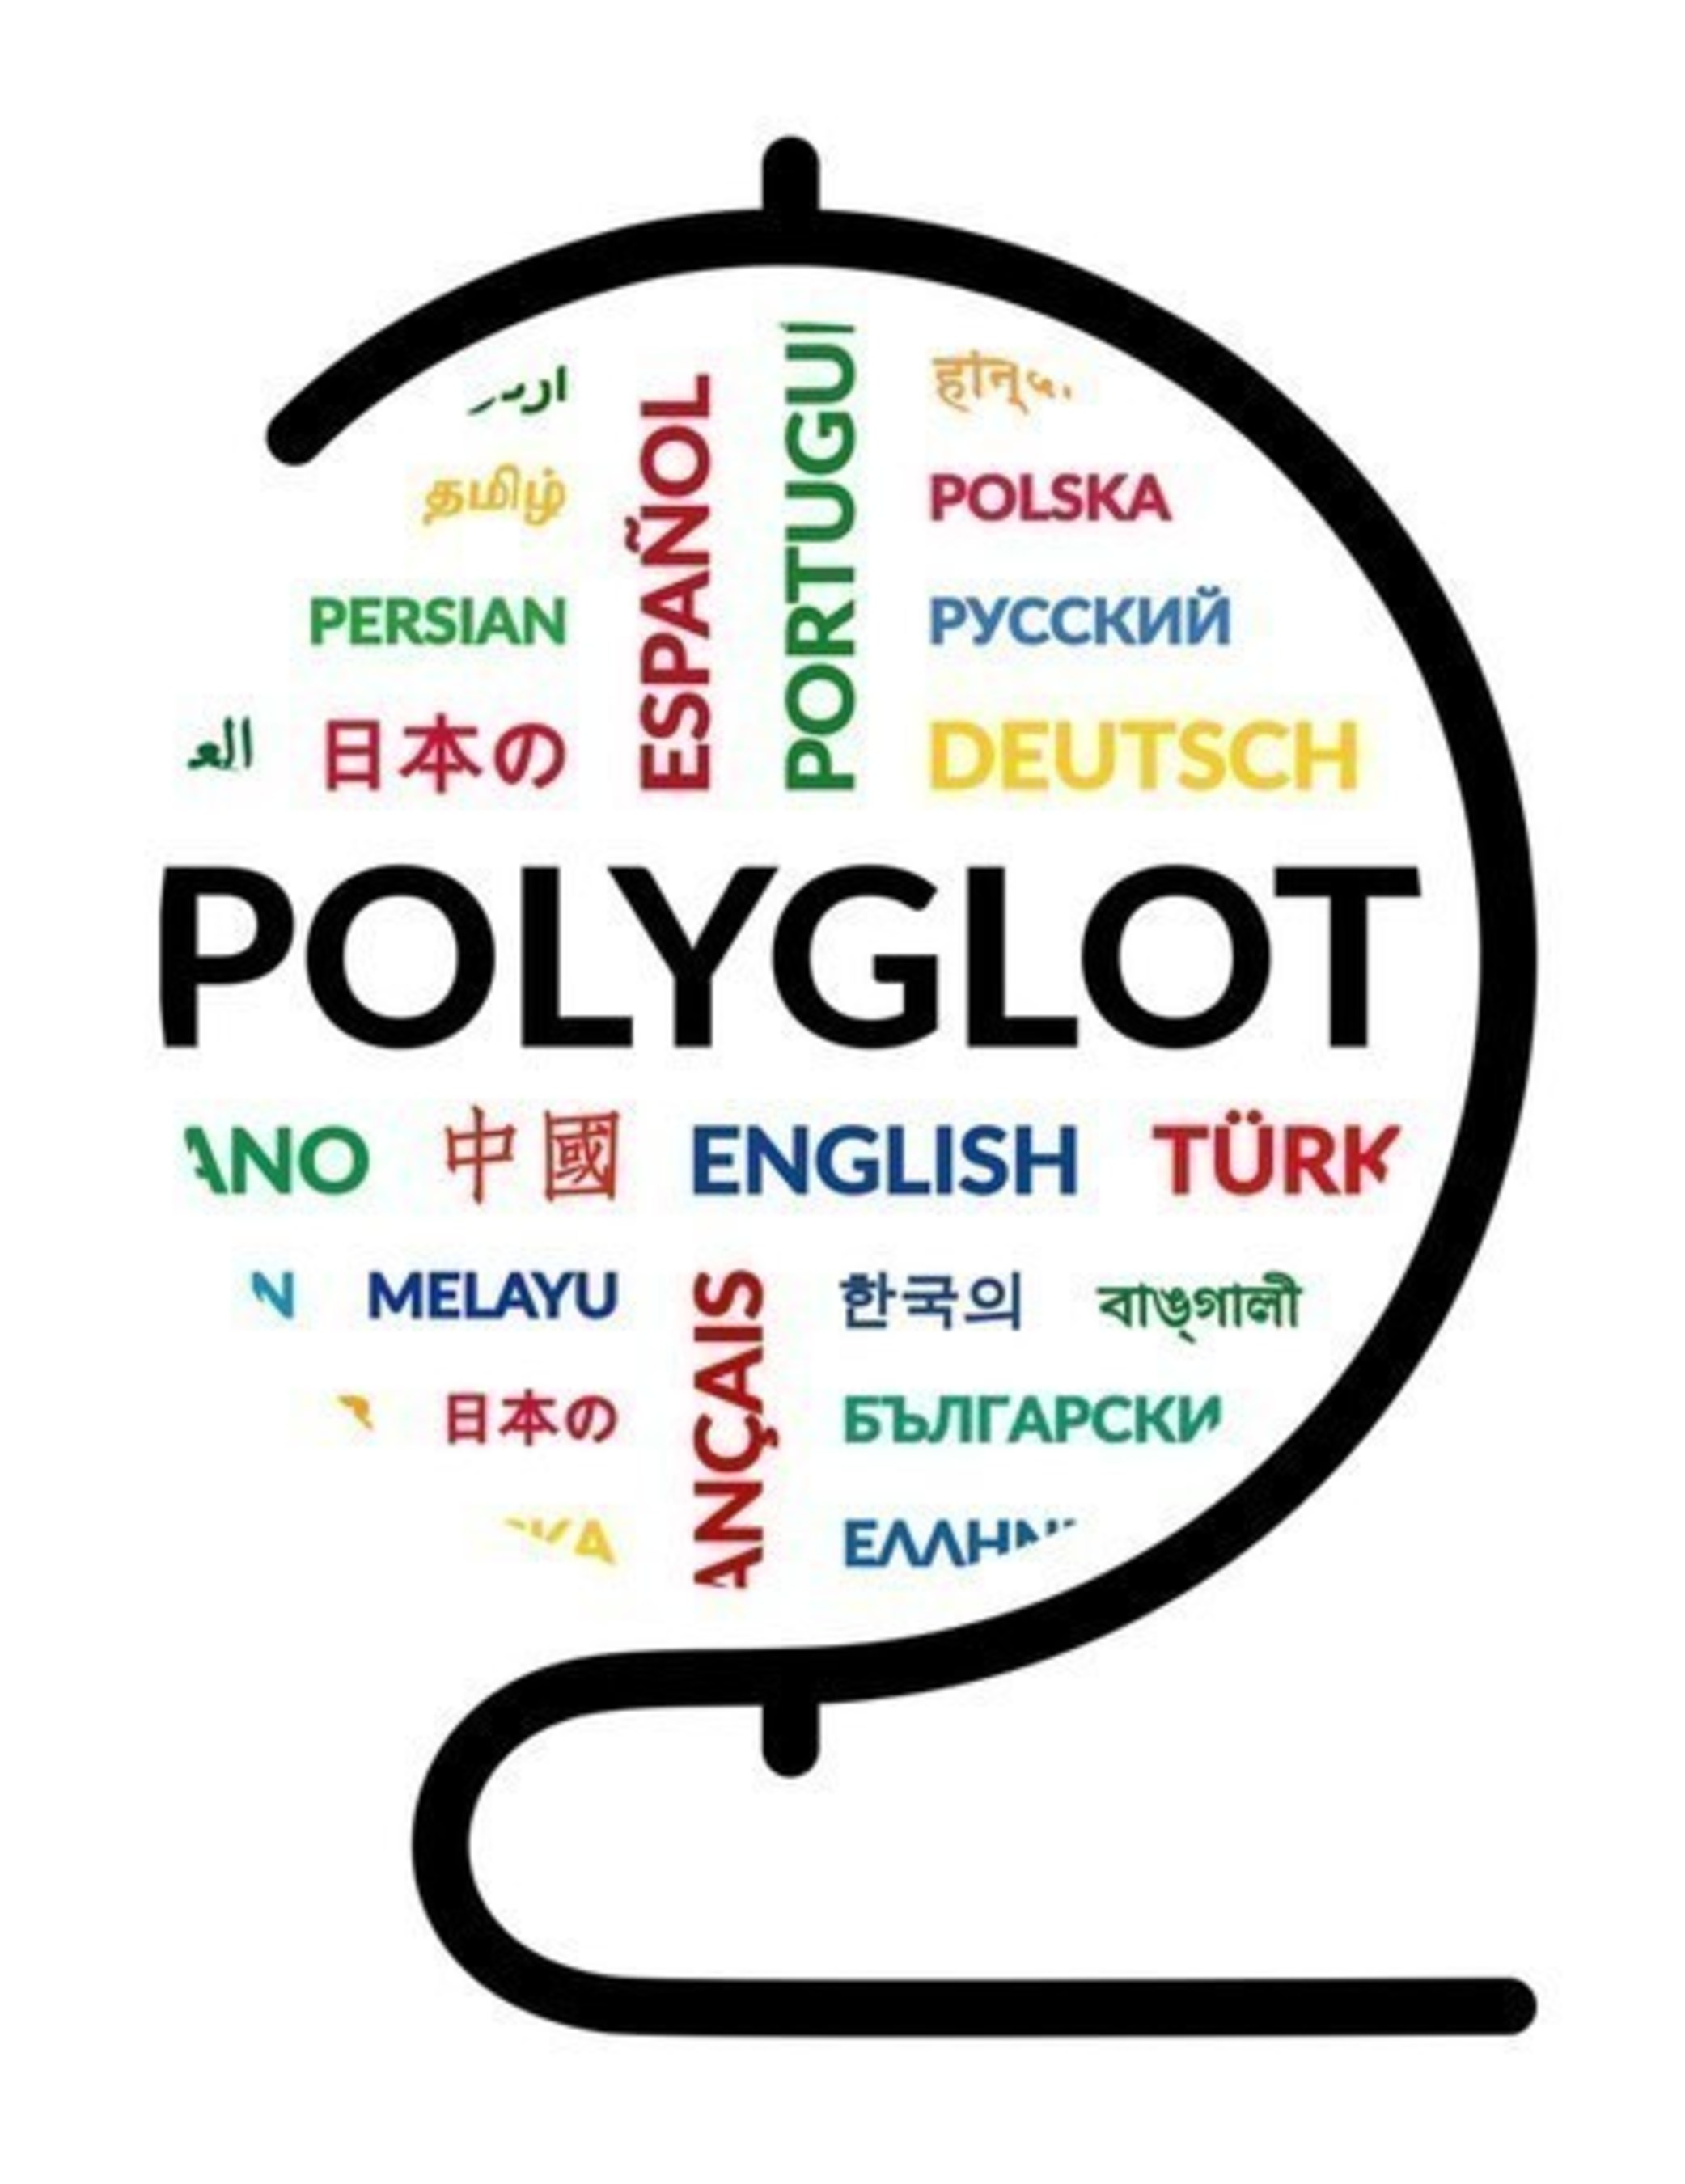 Celebrities Recommend, 'Learning Foreign Languages Can Make You Famous.' 2Polyglot Provides Customers and Freelancers With an Online Linguistic Platform